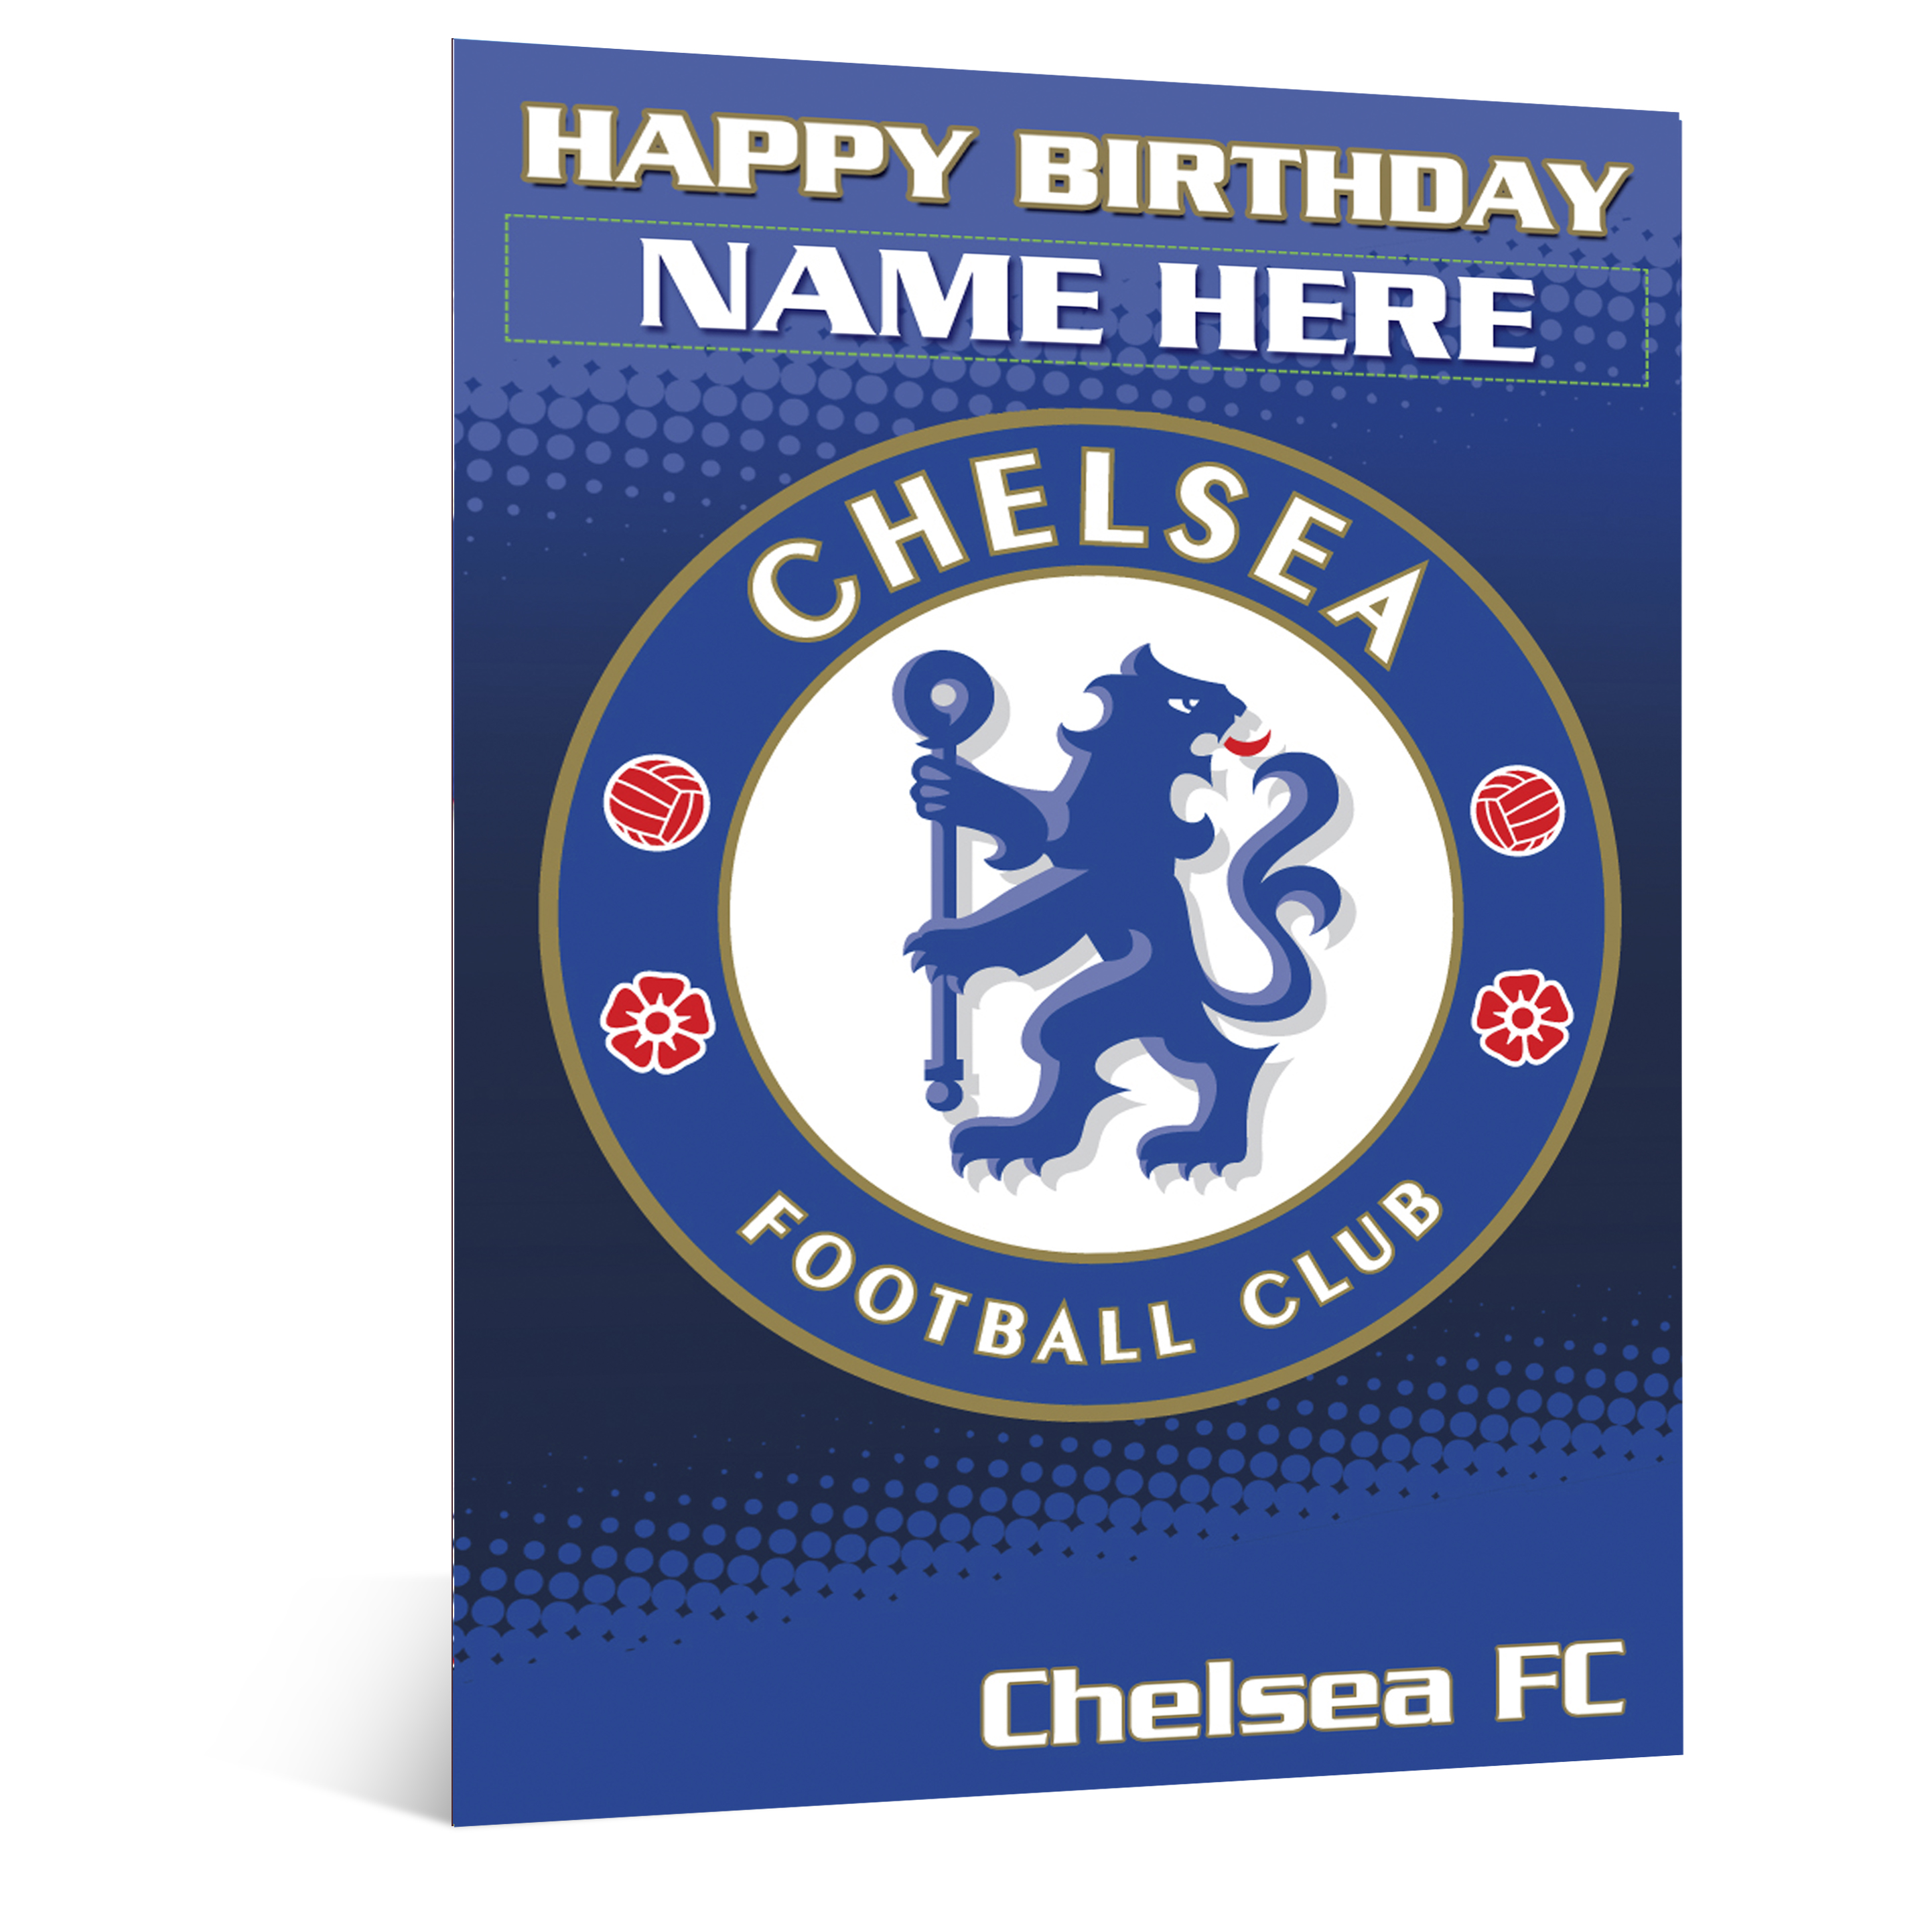 Chelsea Personalised Happy Birthday Card - Crest